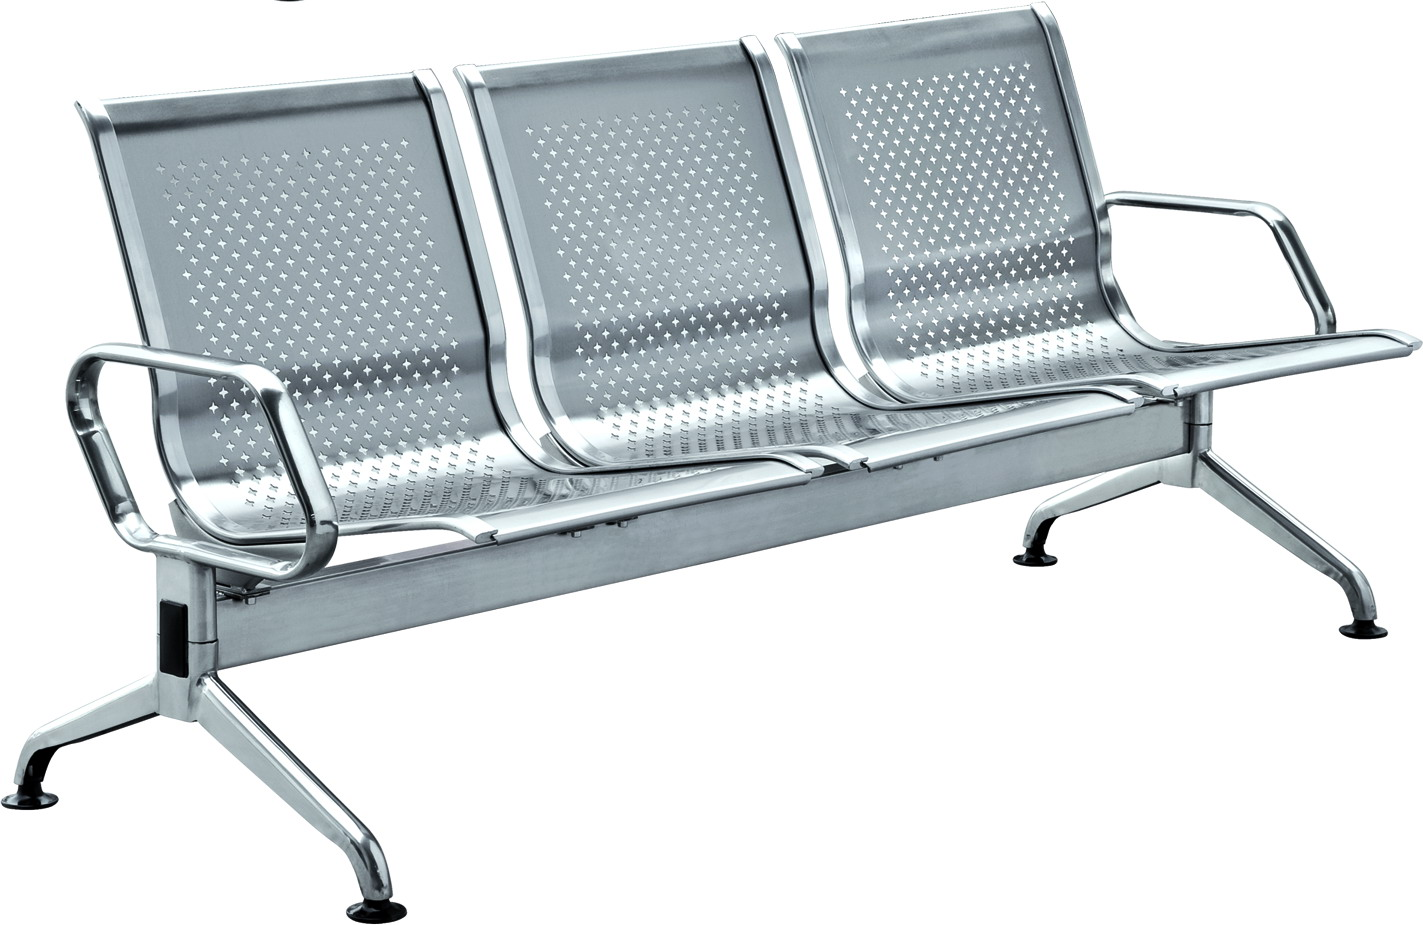 Steel Airport Chair Intex Pull Out Stainless Dan Table Tonnico Group